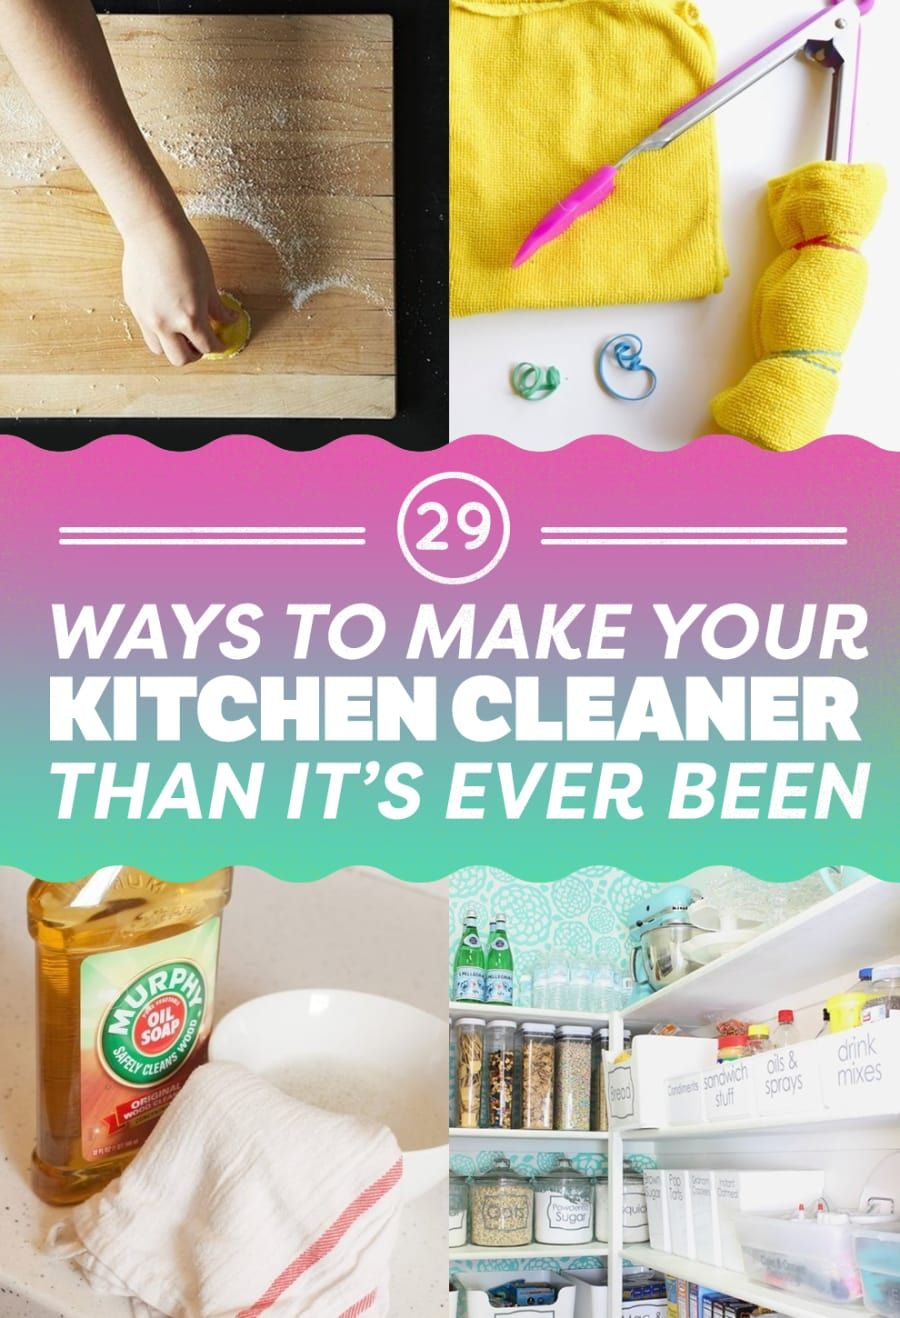 Clever Kitchen 29 Clever Kitchen Cleaning Tips Every Clean Freak Needs To Know